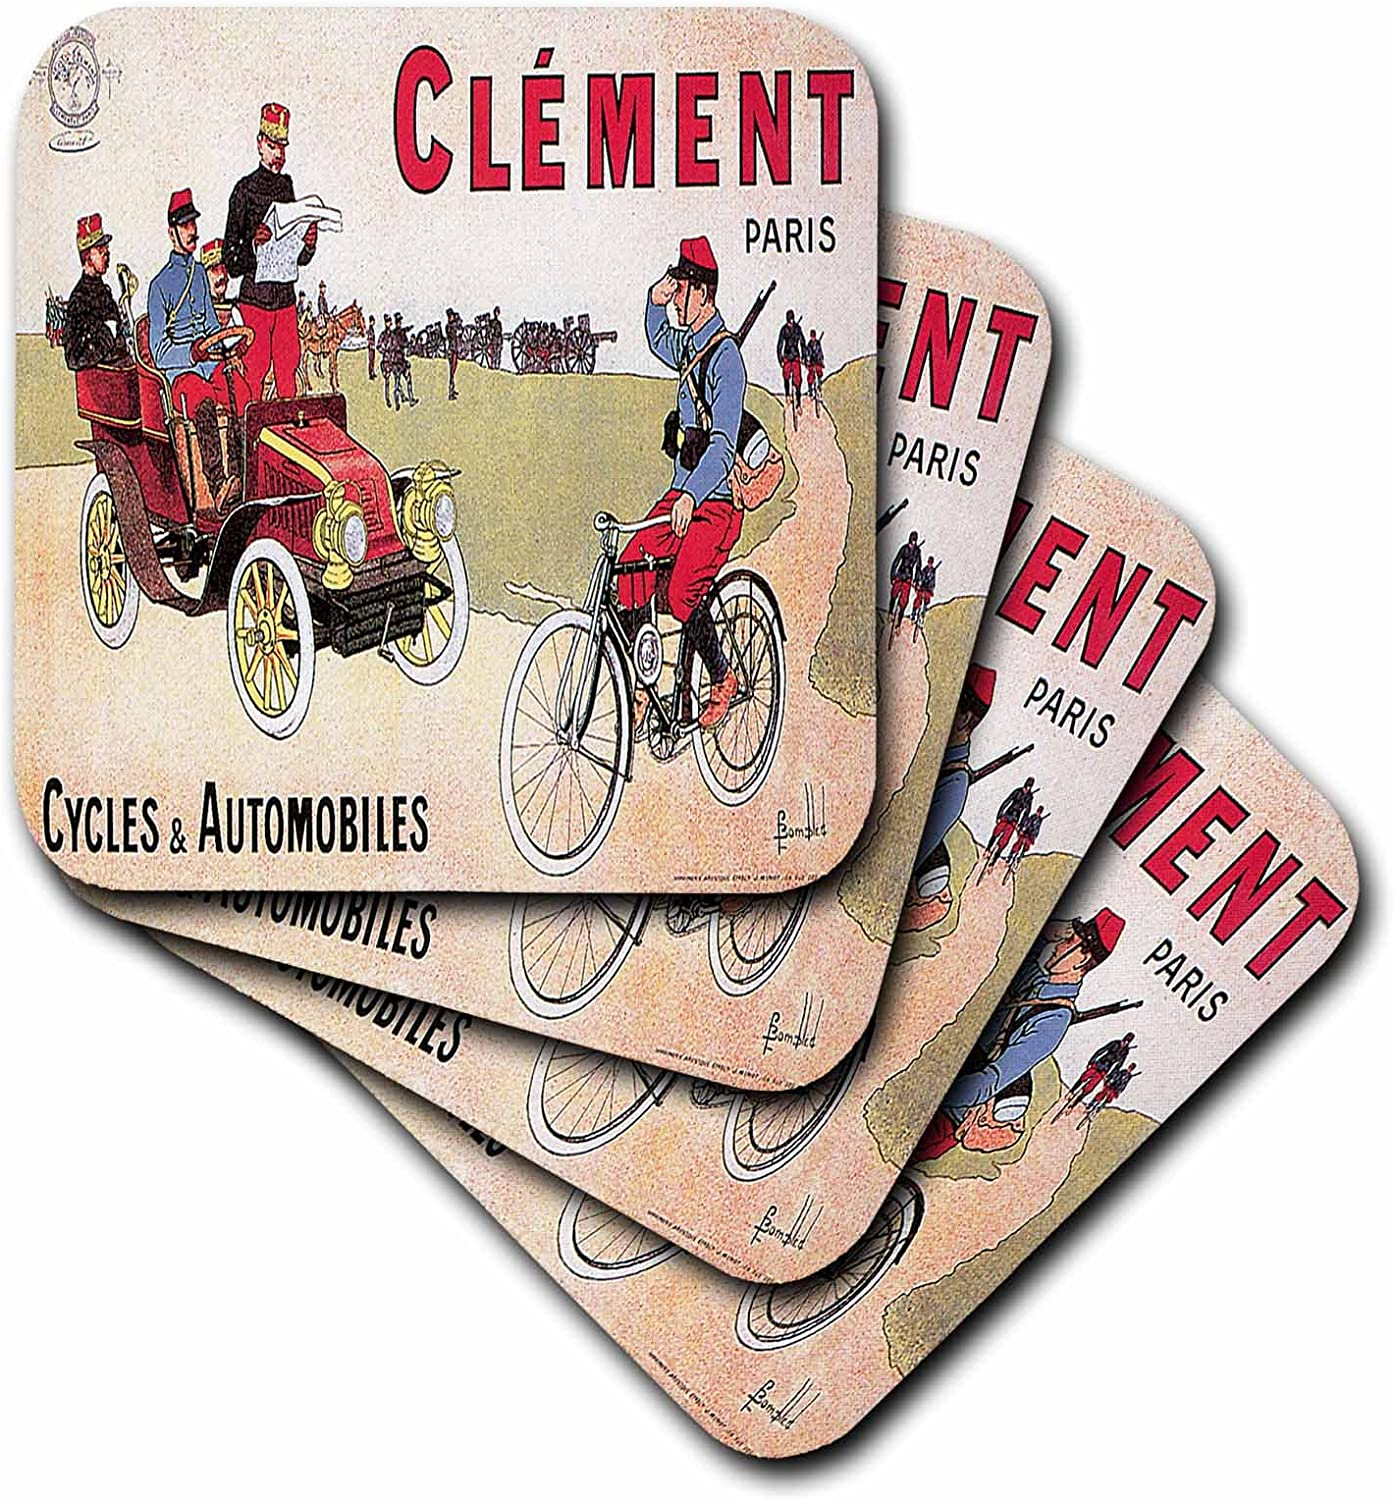 3drose Cst 149757 3 Vintage Clement Paris Cycles And Automobiles Advertising Poster Ceramic Tile Coasters Set Of 4 Amazon Co Uk Kitchen Home